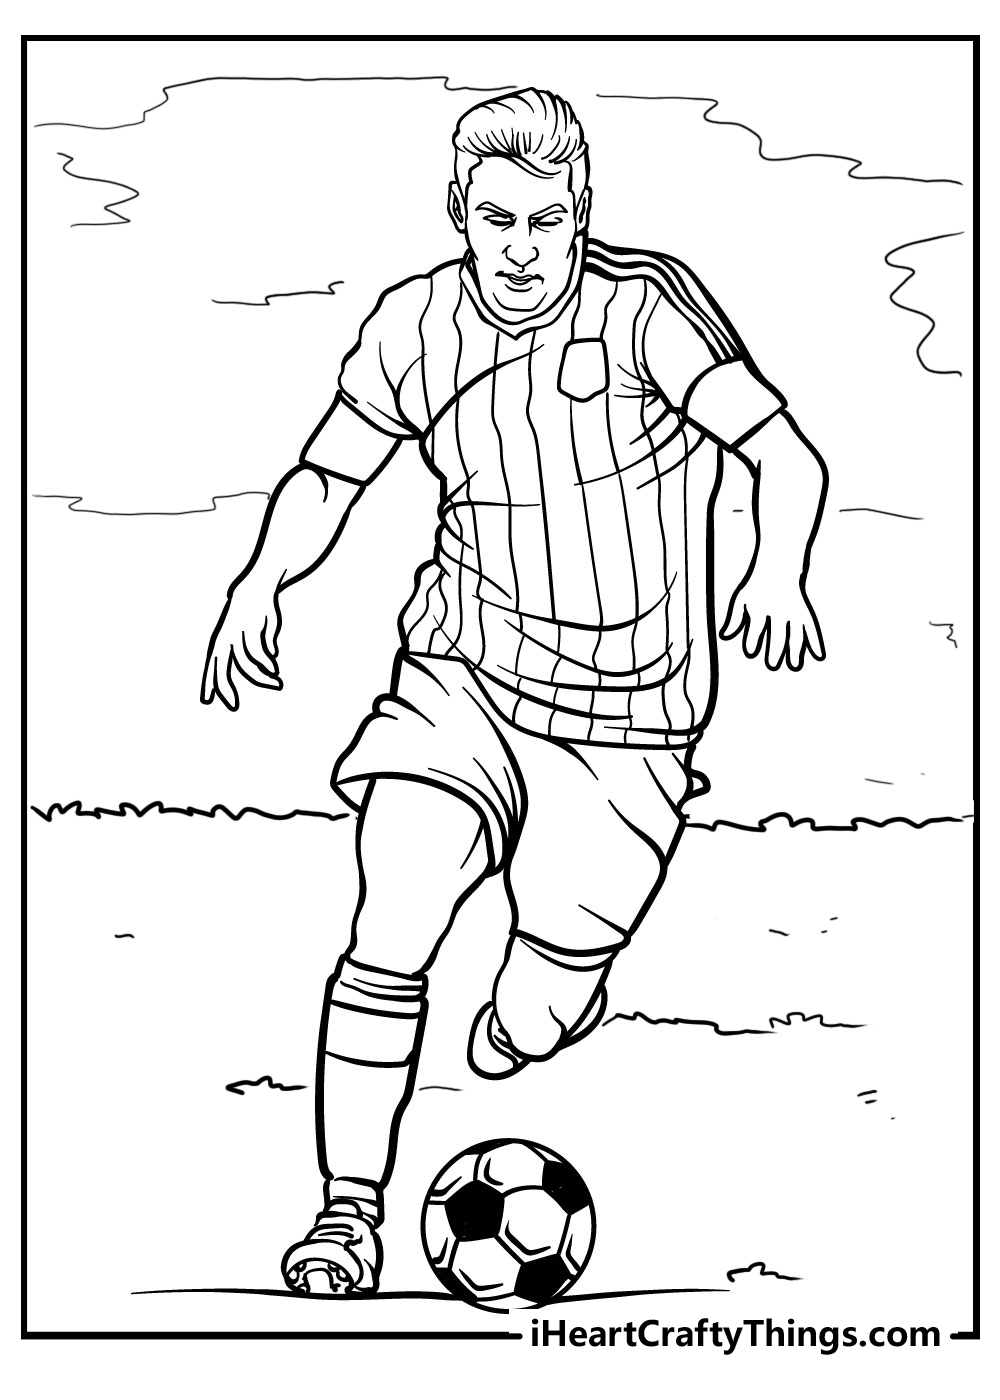 football coloring pages for kids free download